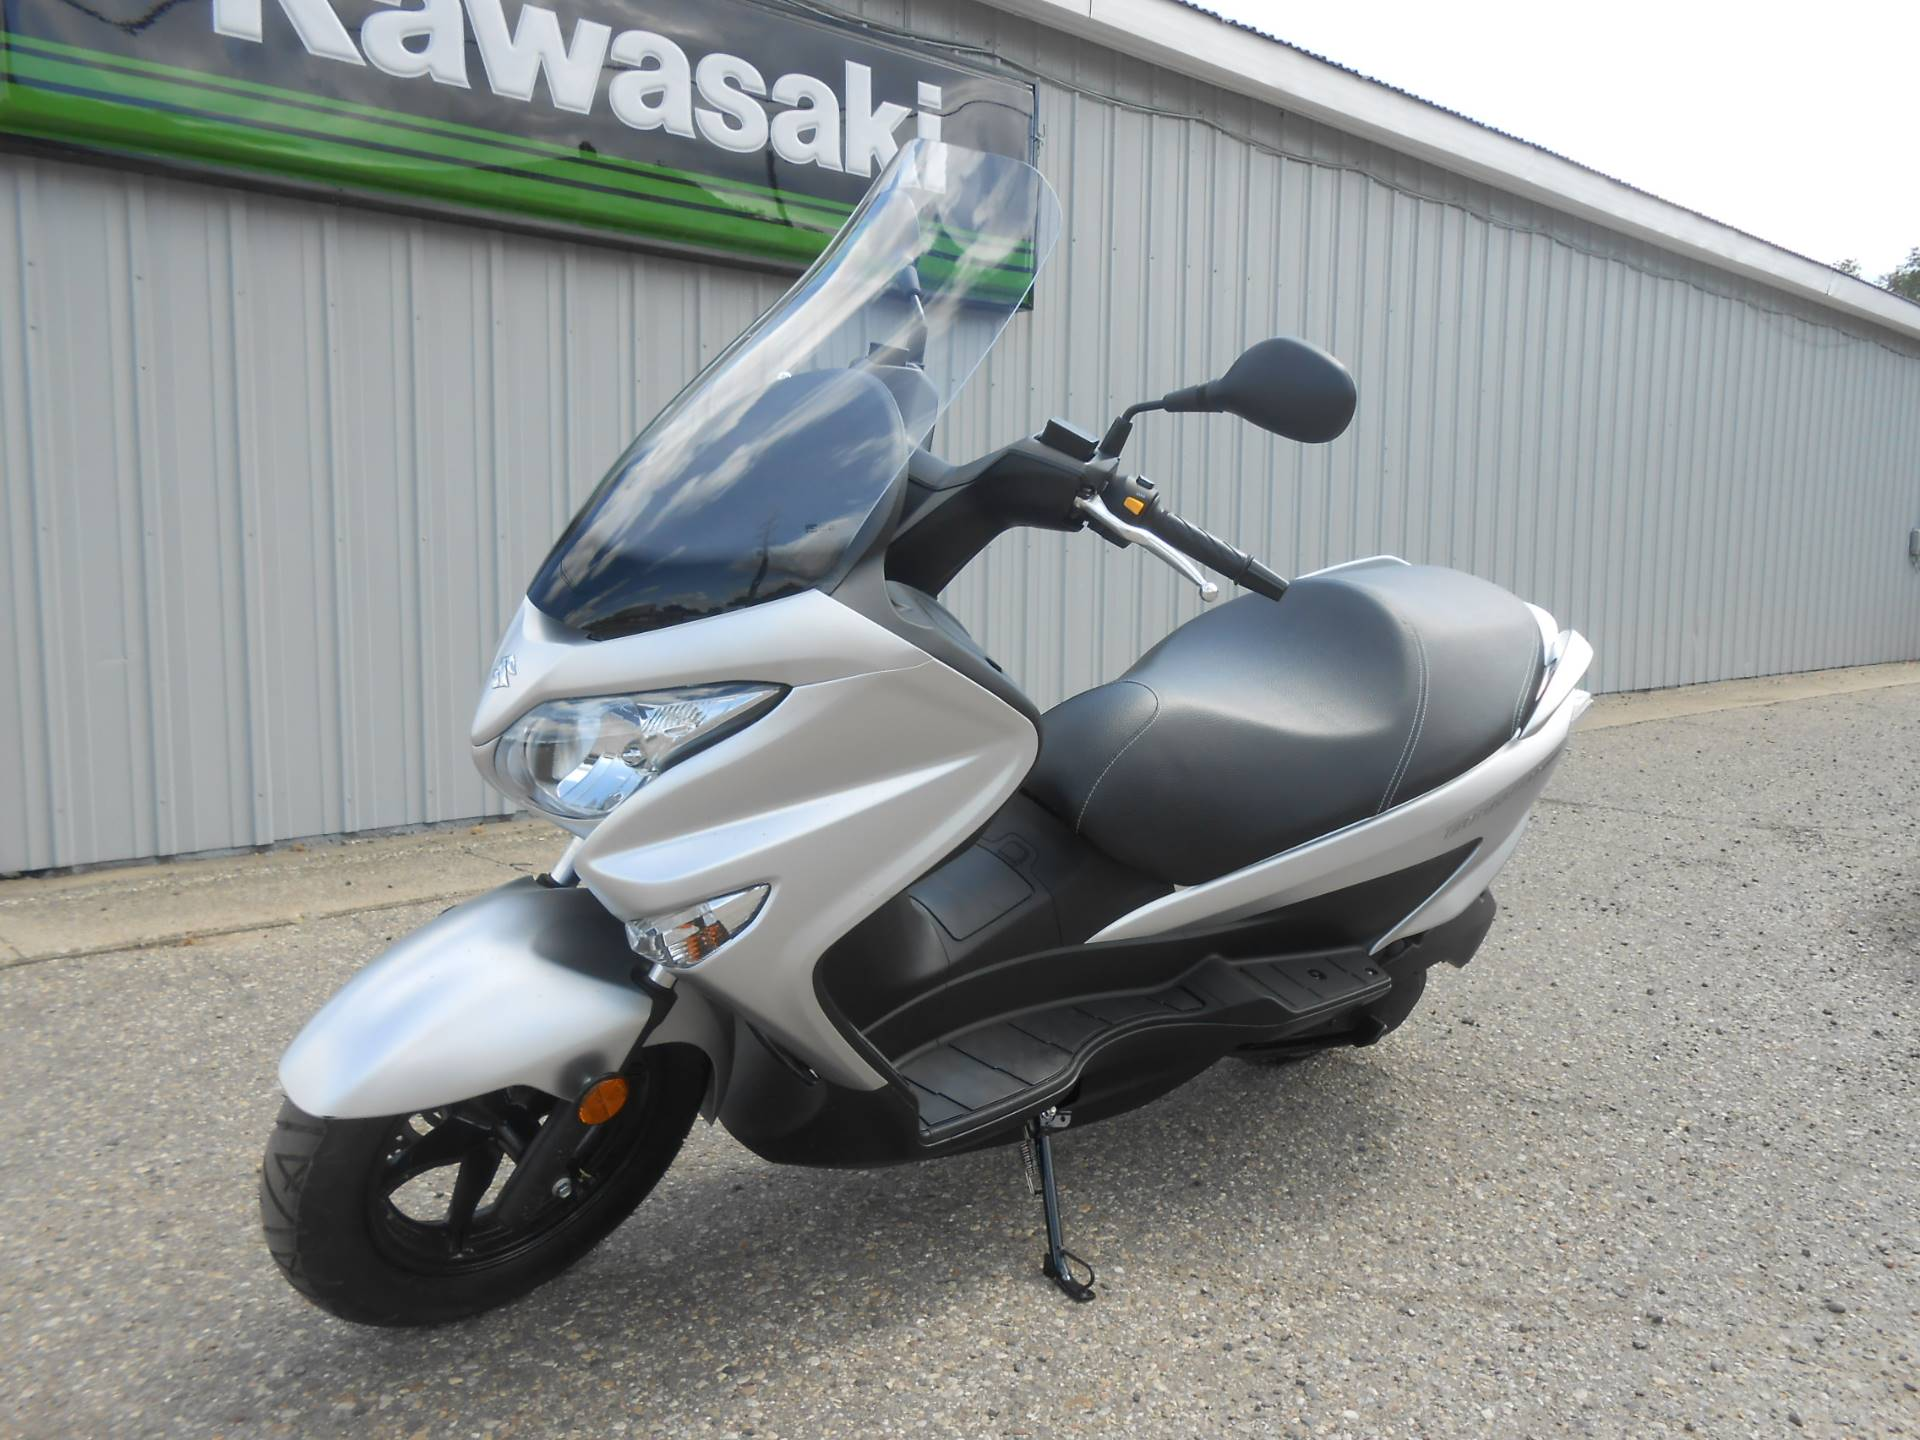 2018 Suzuki Burgman 200 in Howell, Michigan - Photo 1